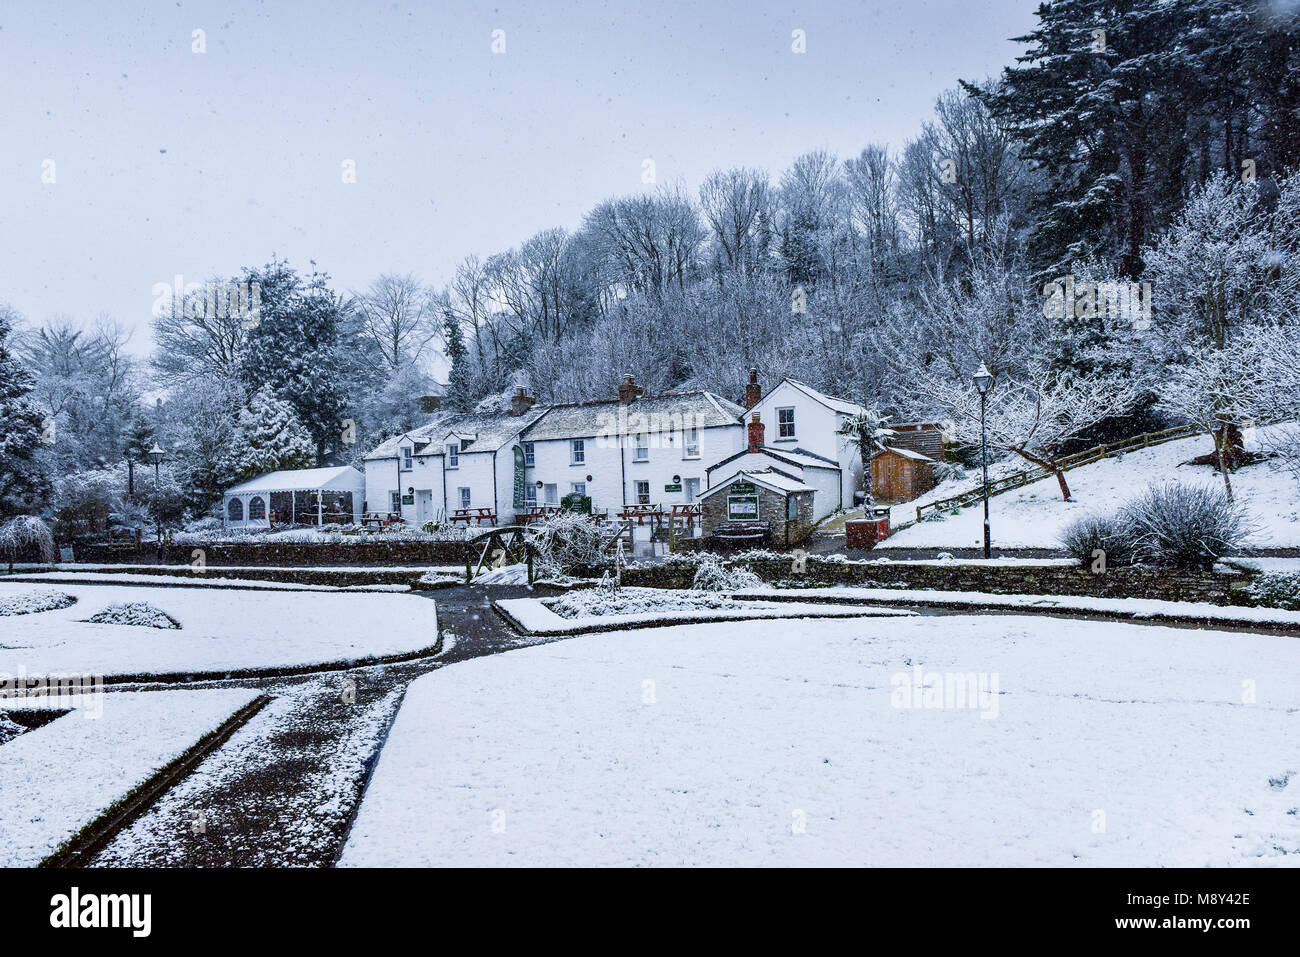 Snow falling over the historic Trenance Heritage Cottages in Newquay Cornwall. - Stock Image